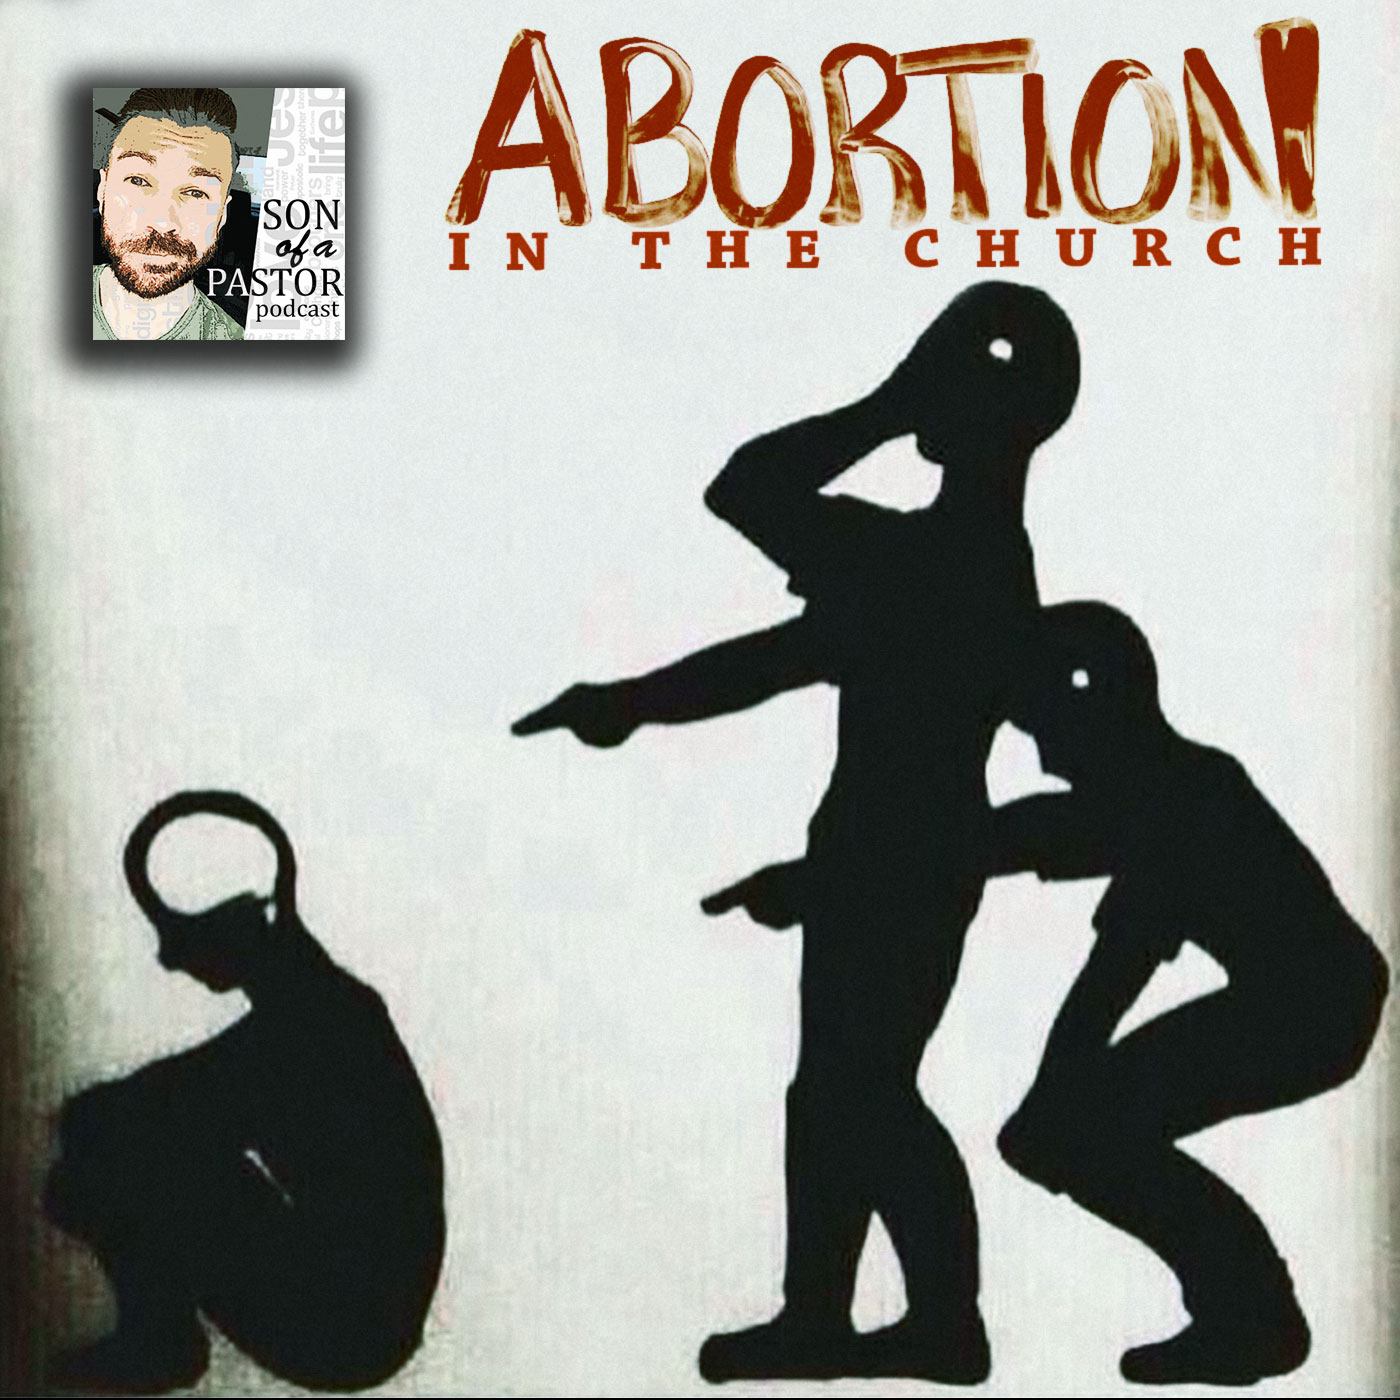 Abortion In The Church - Episode 25